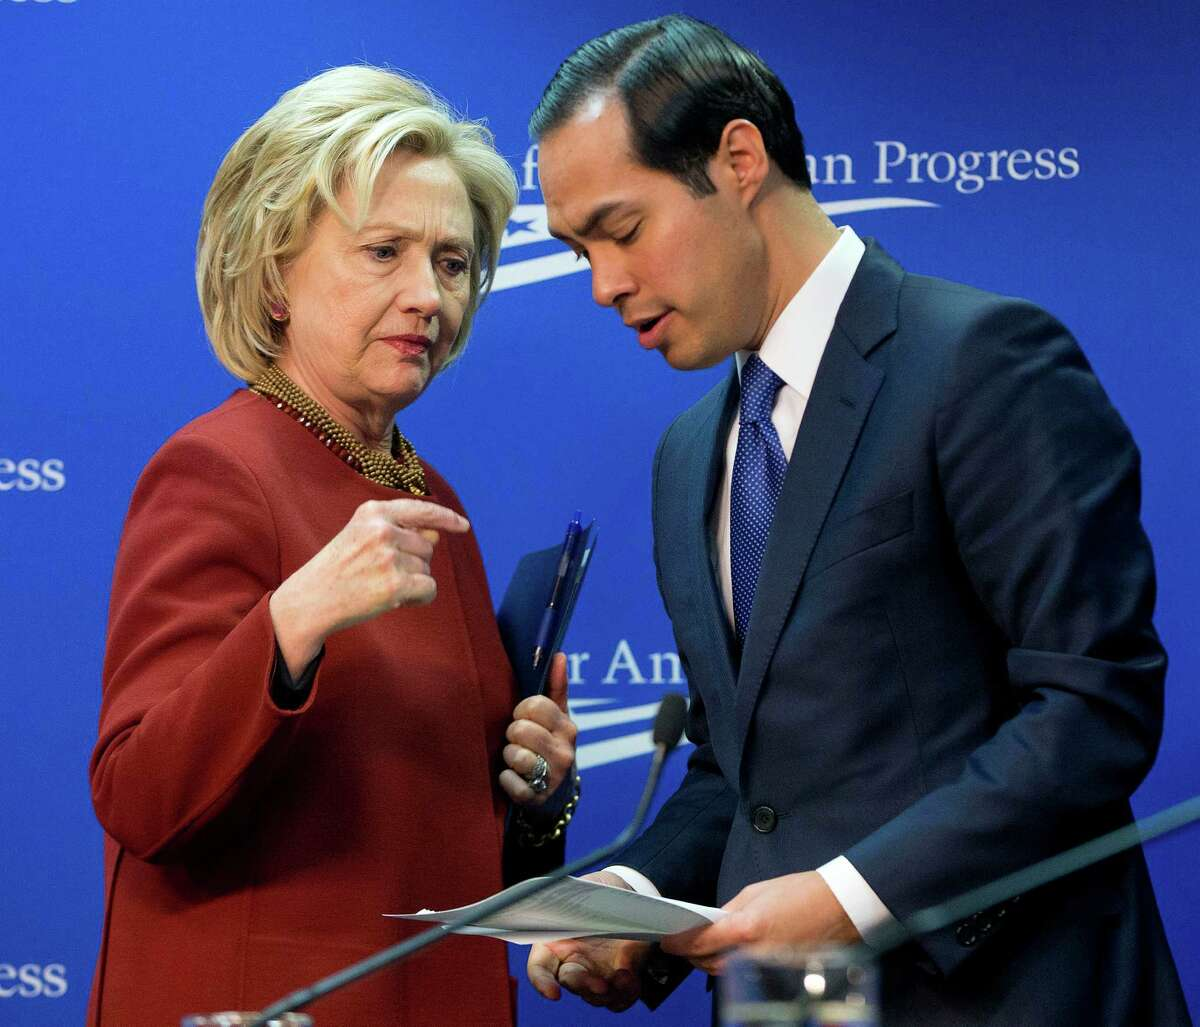 Former San Antonio mayor, now Housing and Urban Development Secretary (HUD) Julian Castro, right, is expected to announce his endorsement of Hillary Clinton when she visits San Antonio on Thursday, Oct. 15, 2015. Castro is widely expected to be on Clinton's short list of potential picks for a VP running mate, should she win the nomination.